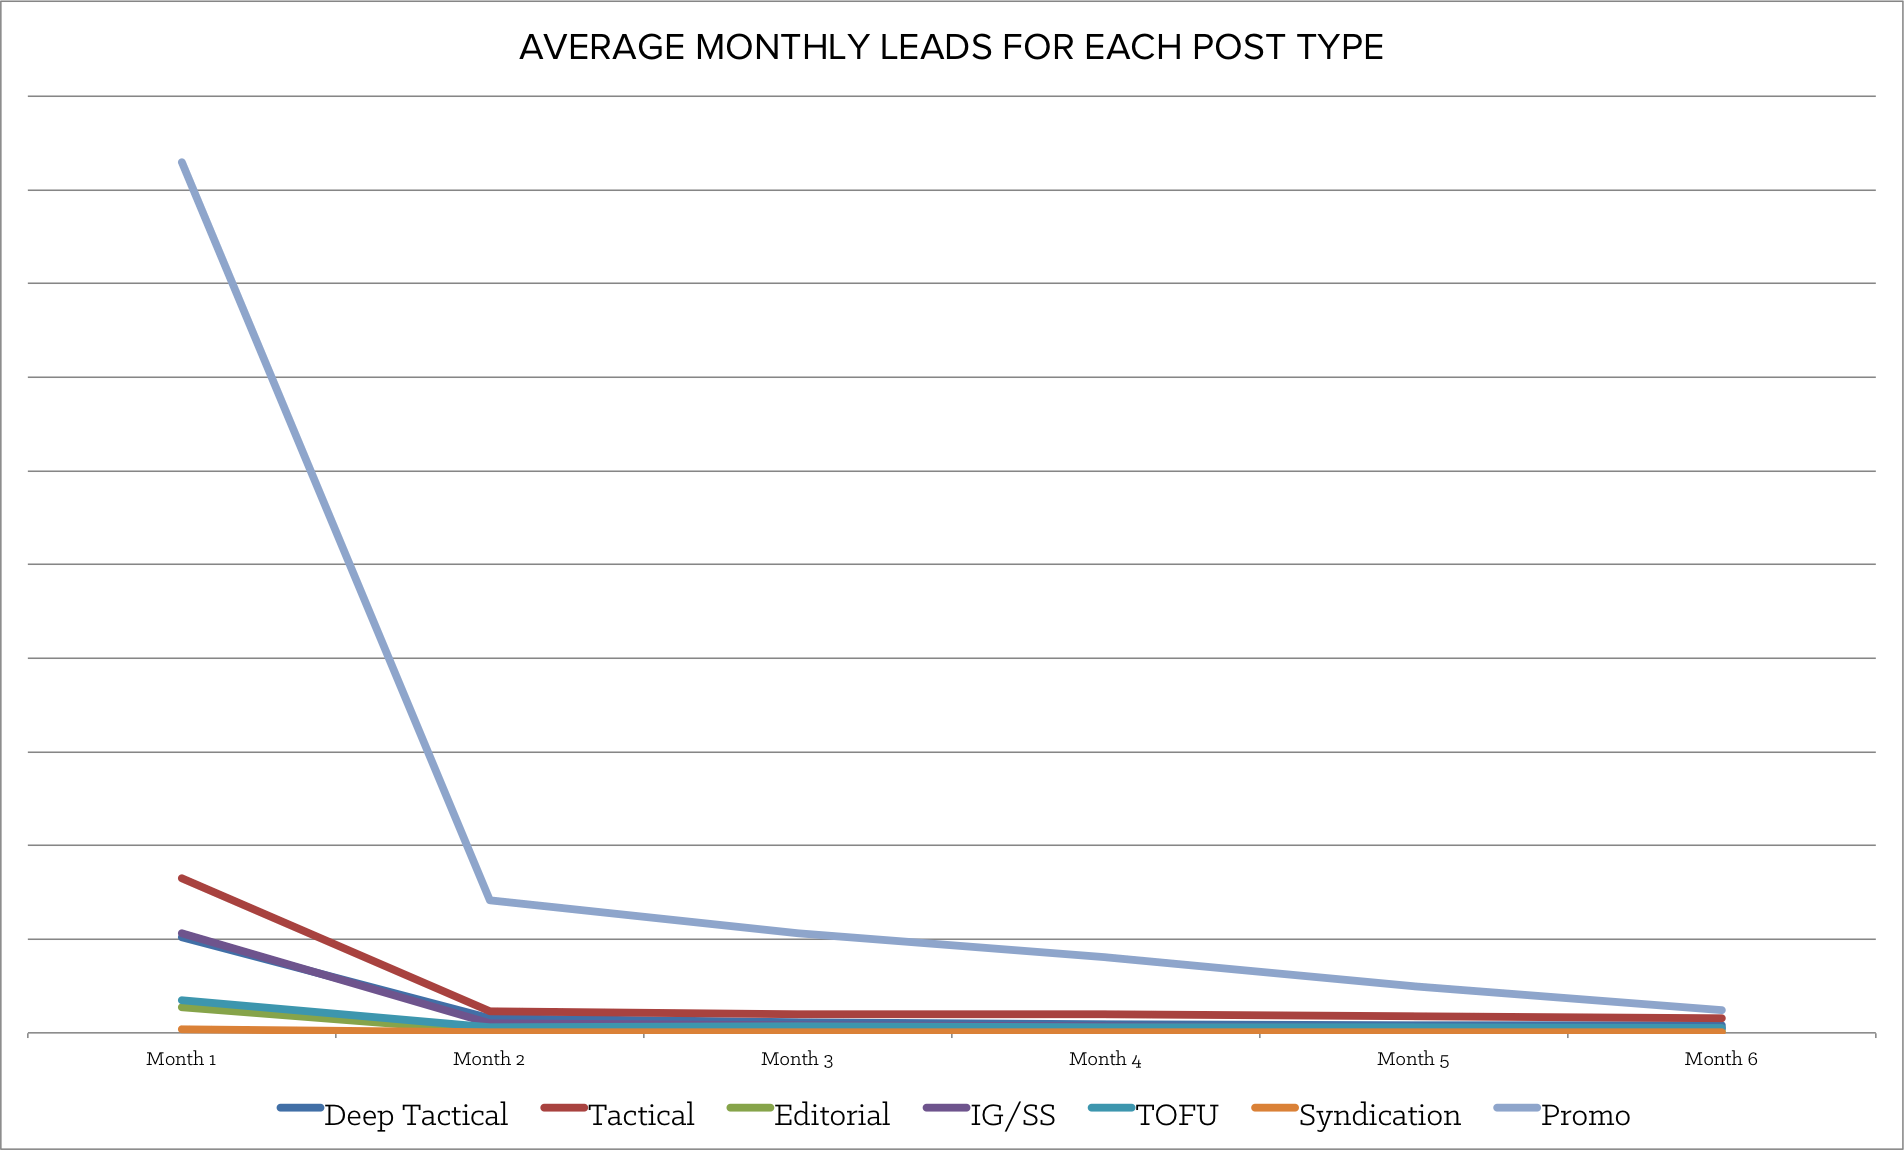 average_monthly_leads_for_each_post_type-1.png